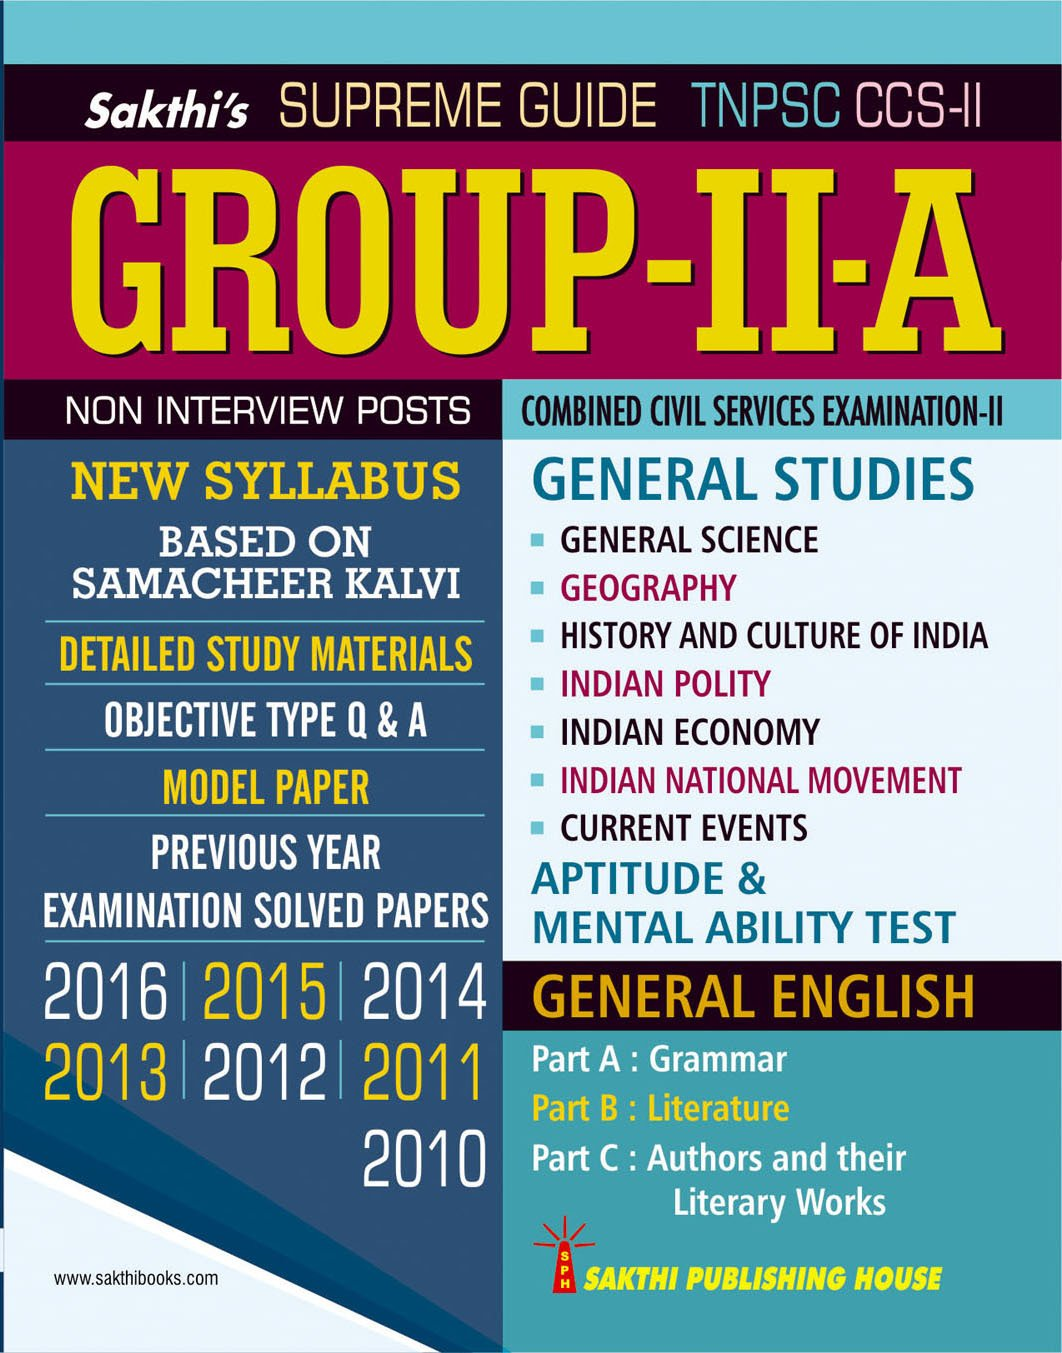 TNPSC GROUP 2 MATERIAL IN ENGLISH EBOOK